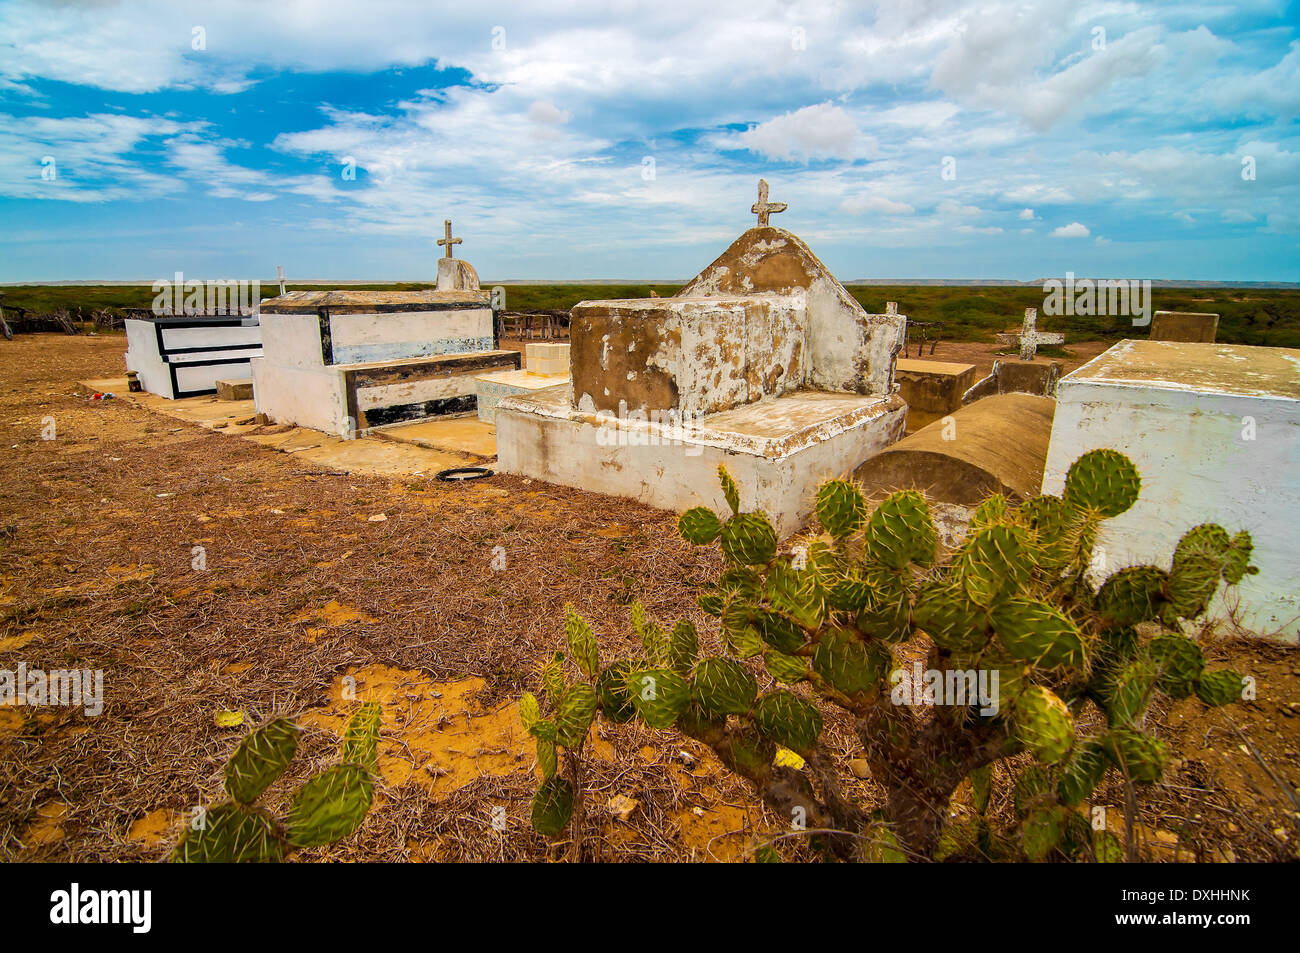 An isolated indigenous cemetery in the desert. - Stock Image